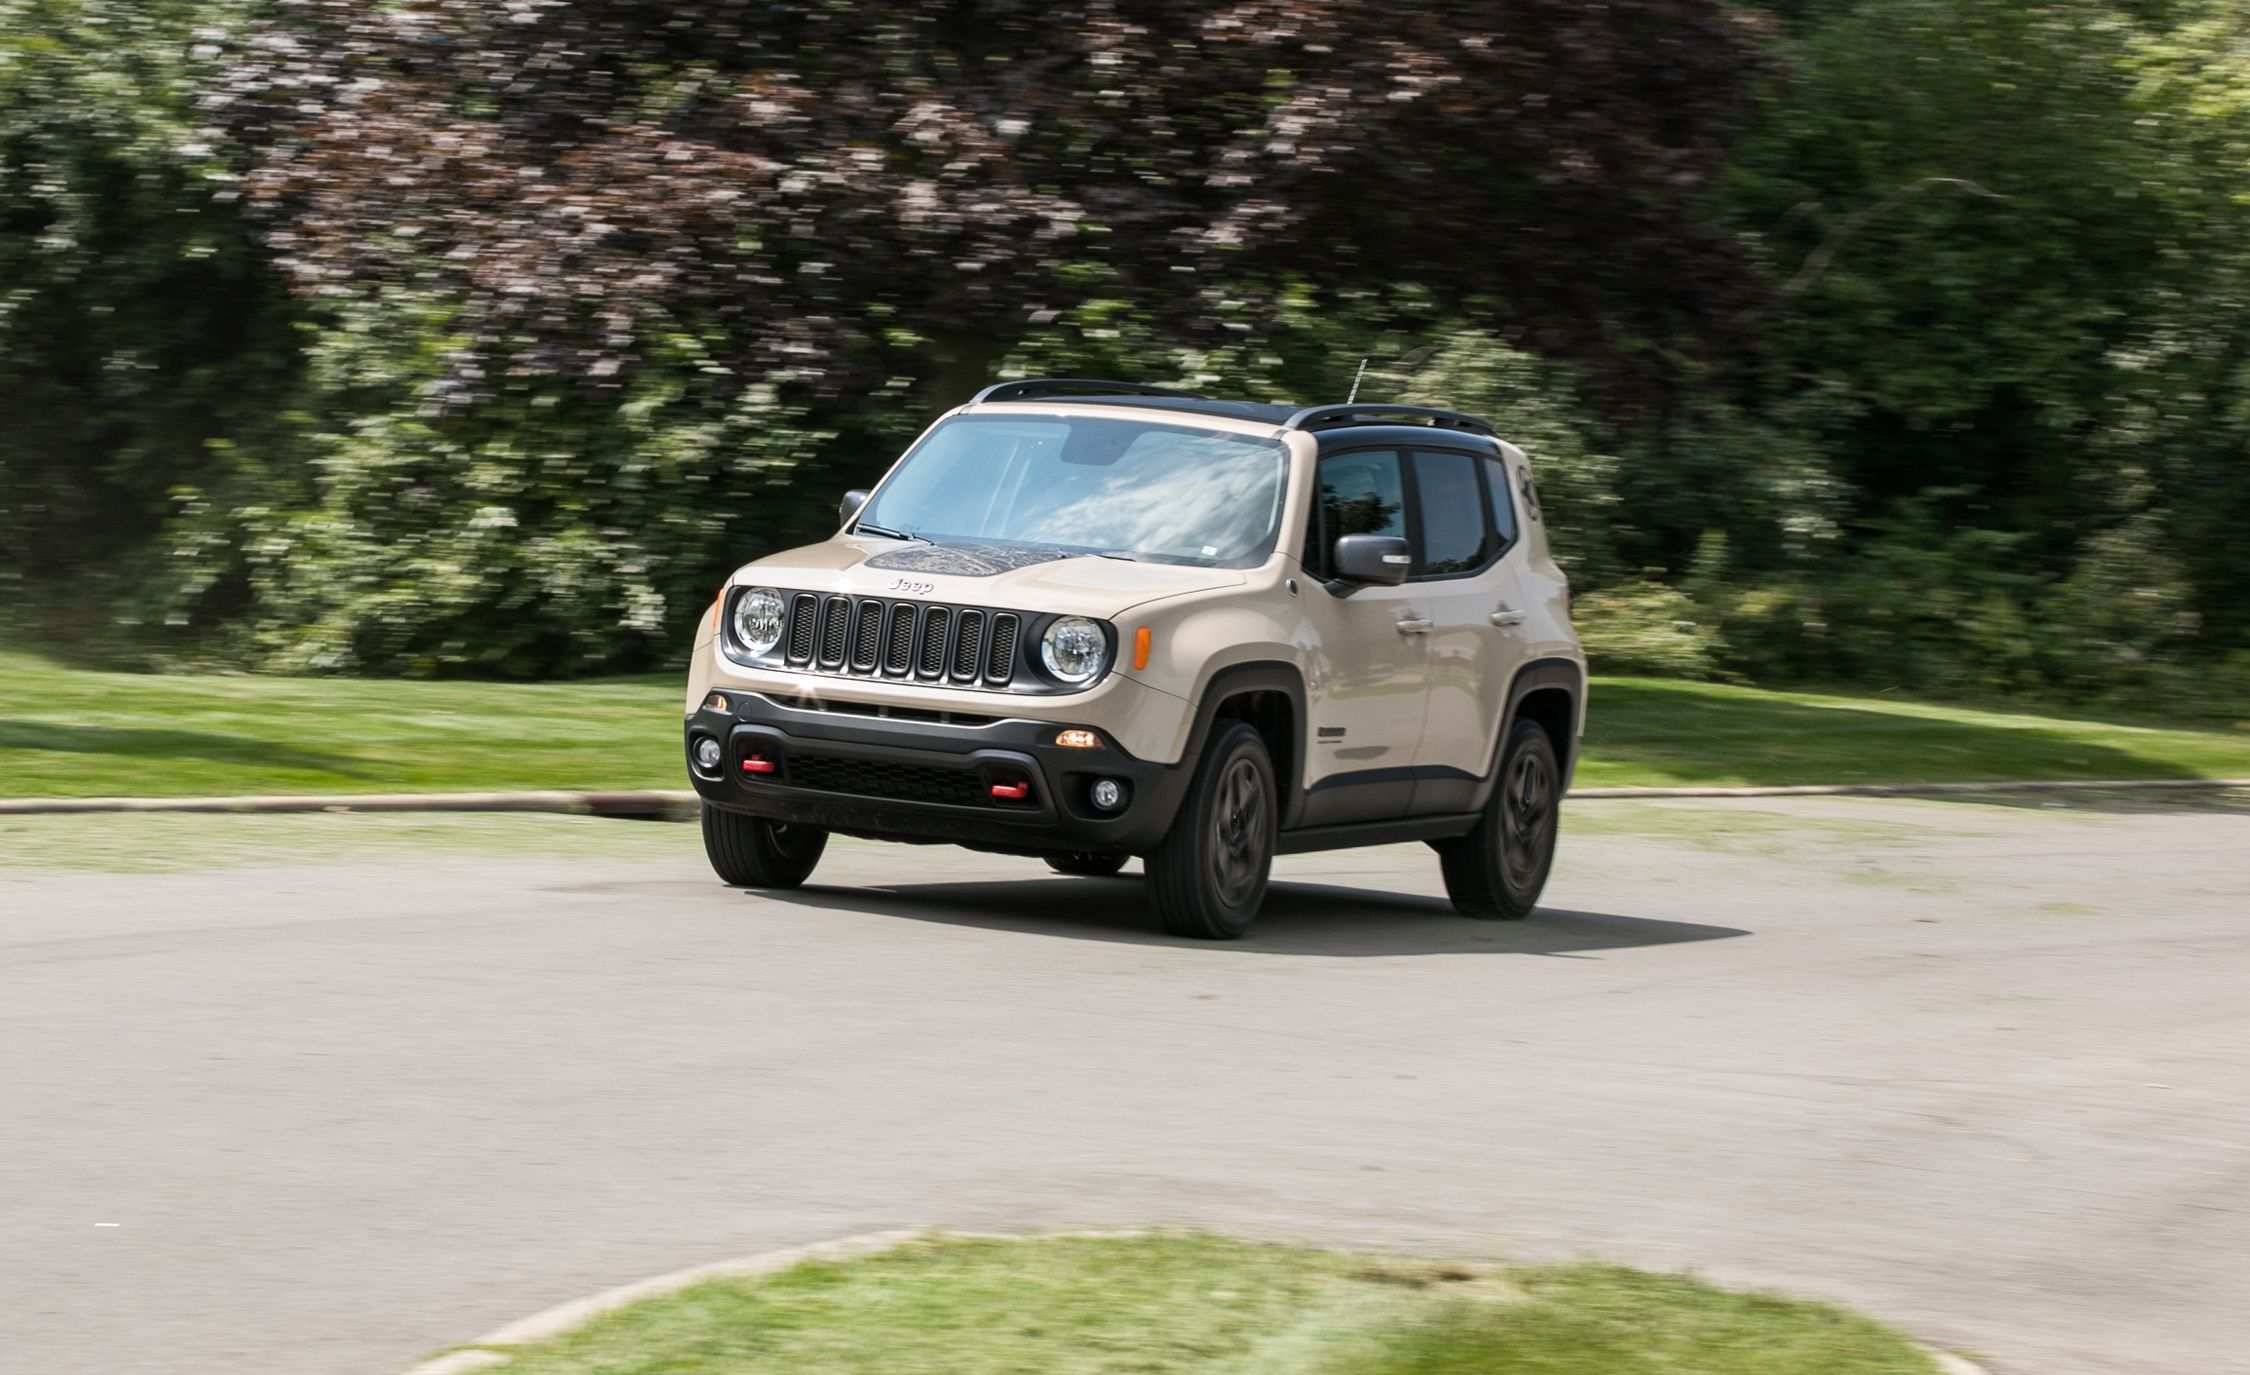 71 Best Review New Bantam Jeep 2019 First Drive Wallpaper for New Bantam Jeep 2019 First Drive